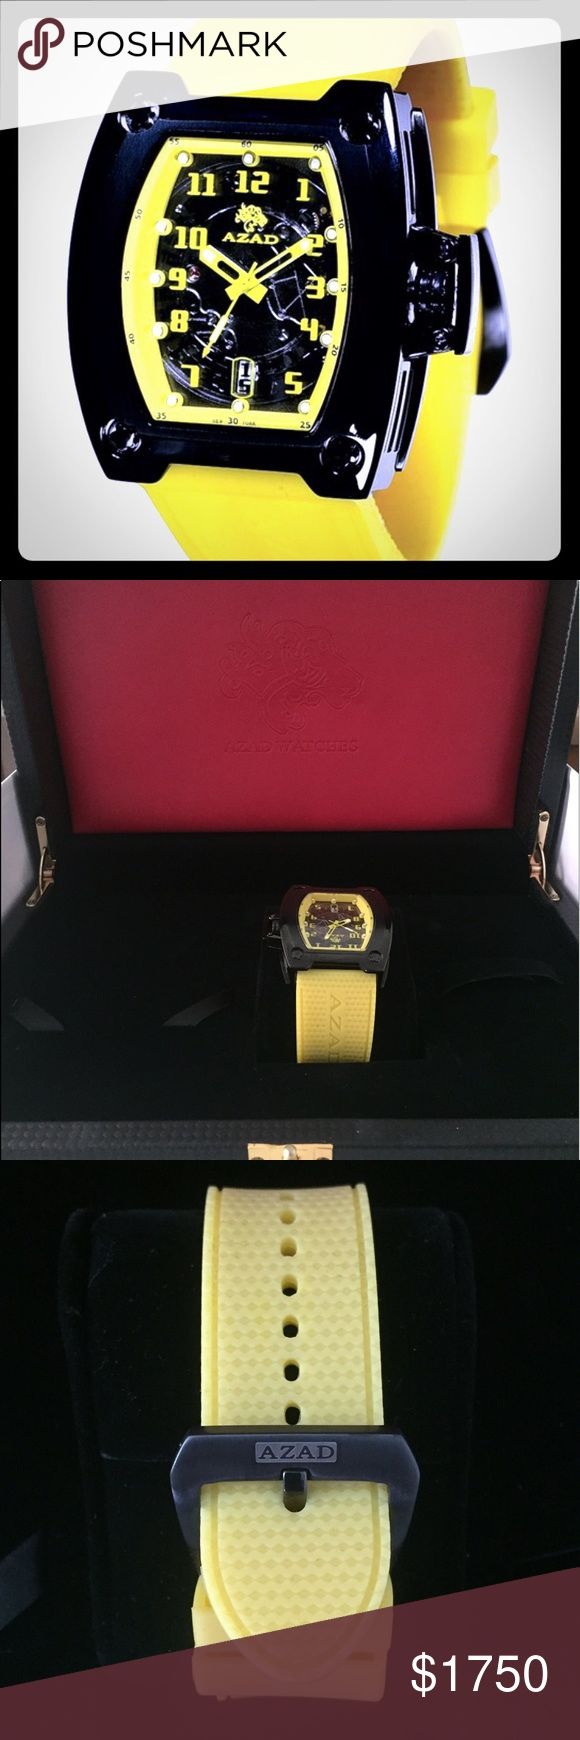 Azad Limited Edition Ice Yellow Dial Watch, New! A brand new, in box, never worn Azad Limited Edition Ice Yellow Dial Watch. Comes with beautiful wood box and all other original packaging. Sells on World's Best for $2,195. https://www.worldsbest.com/watches/1417818731/azad-ice-yellow-dial-watch Azad Accessories Watches